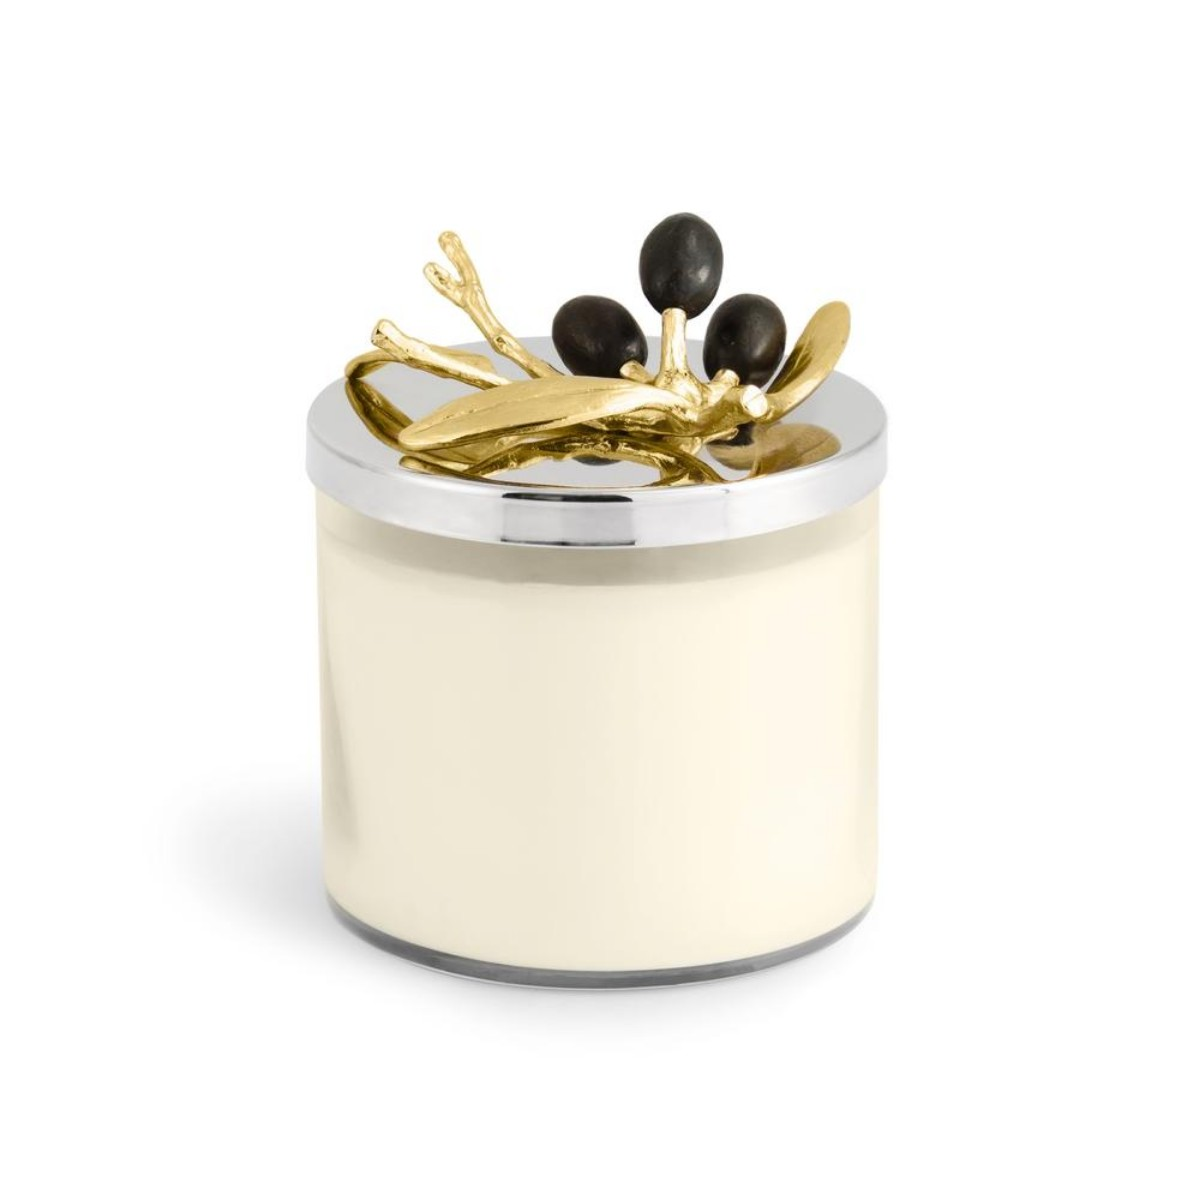 Michael Aram I Olive Branch Gold Candle